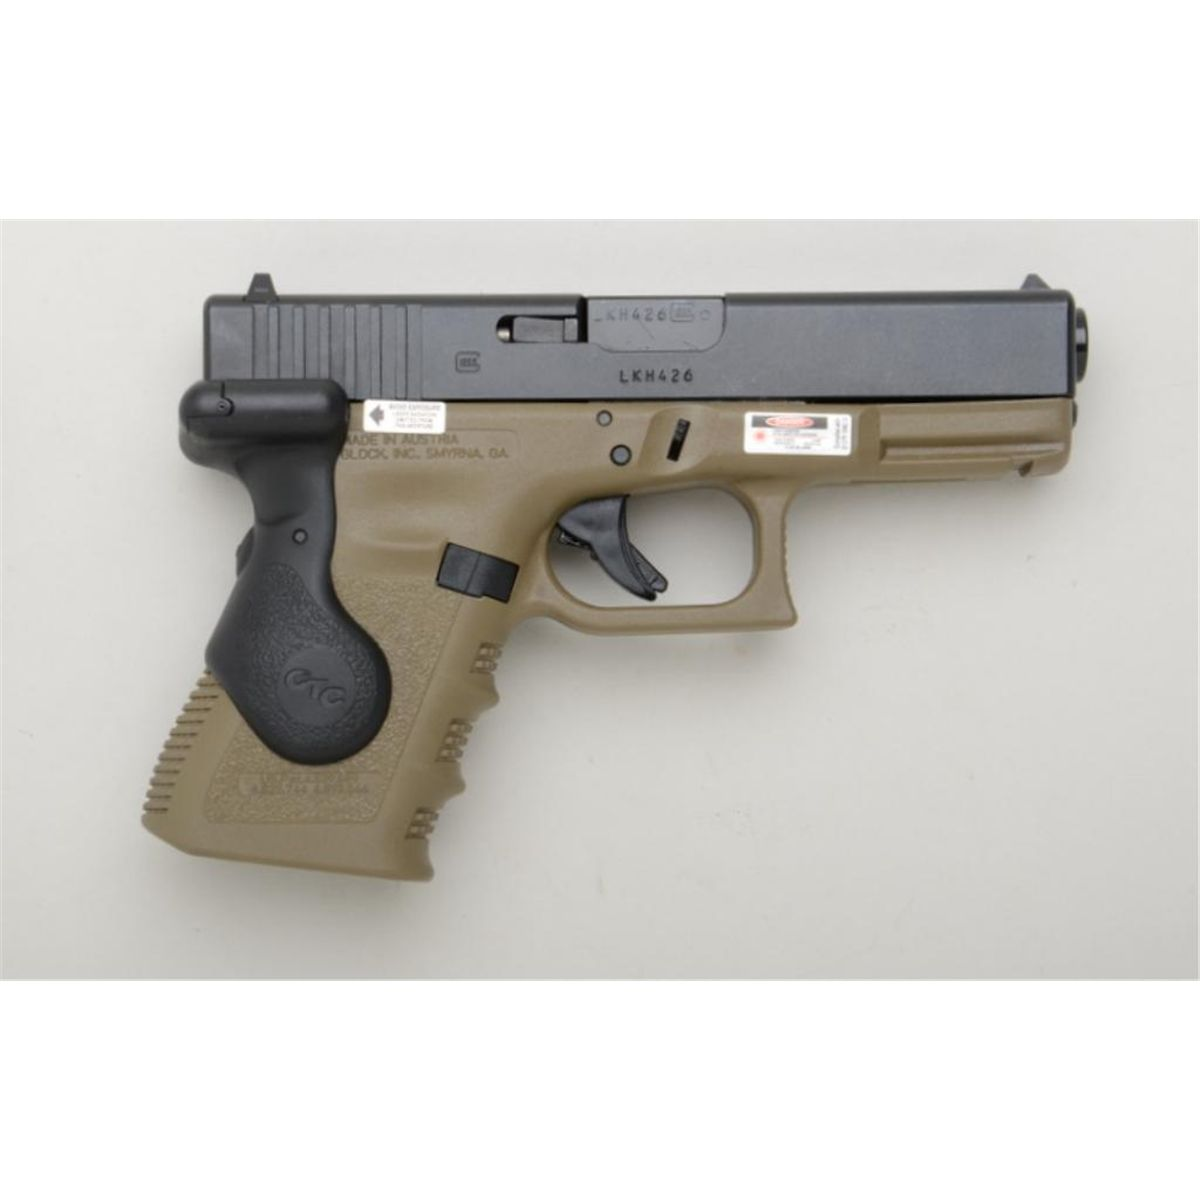 Glock Model 10 .10 caliber S&W compact size, laser sight, with